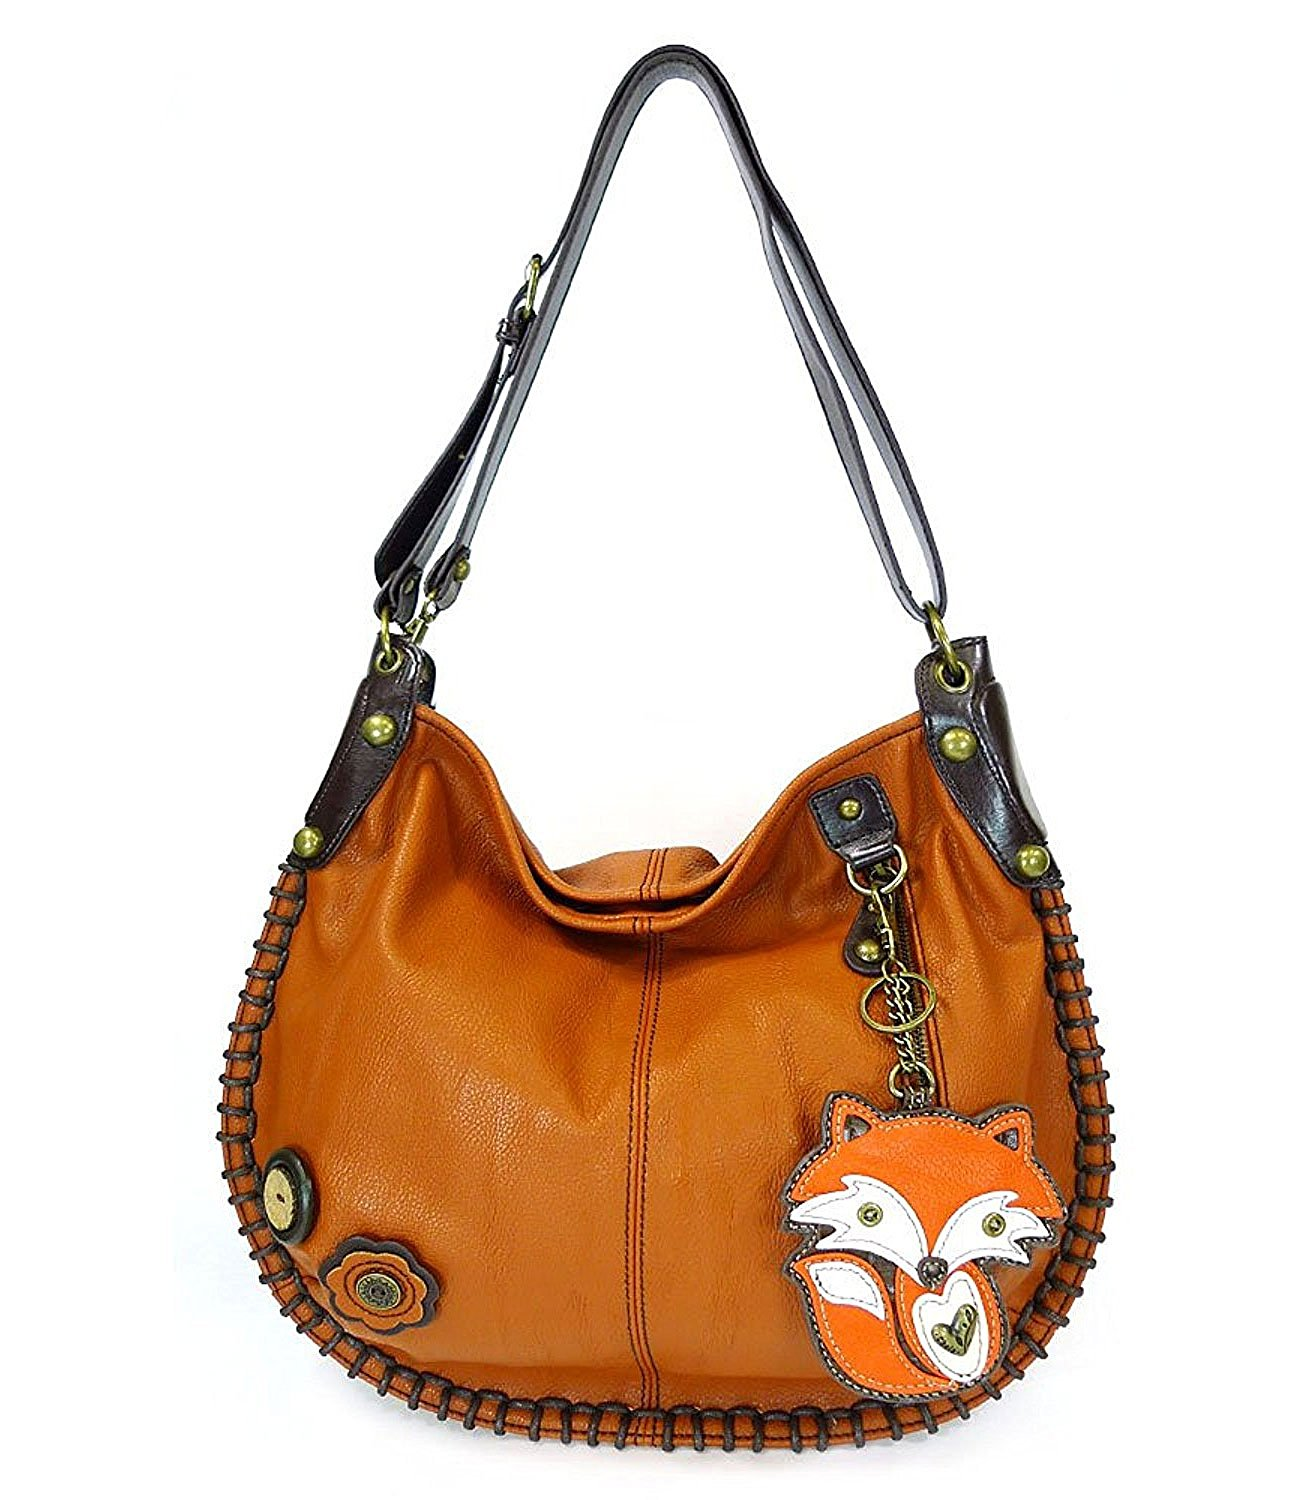 Get Quotations · Chala Handbag Charming Hobo Crossbody Large Tote Bag Orange  FOX Vegan leathe 66bd39a4ef